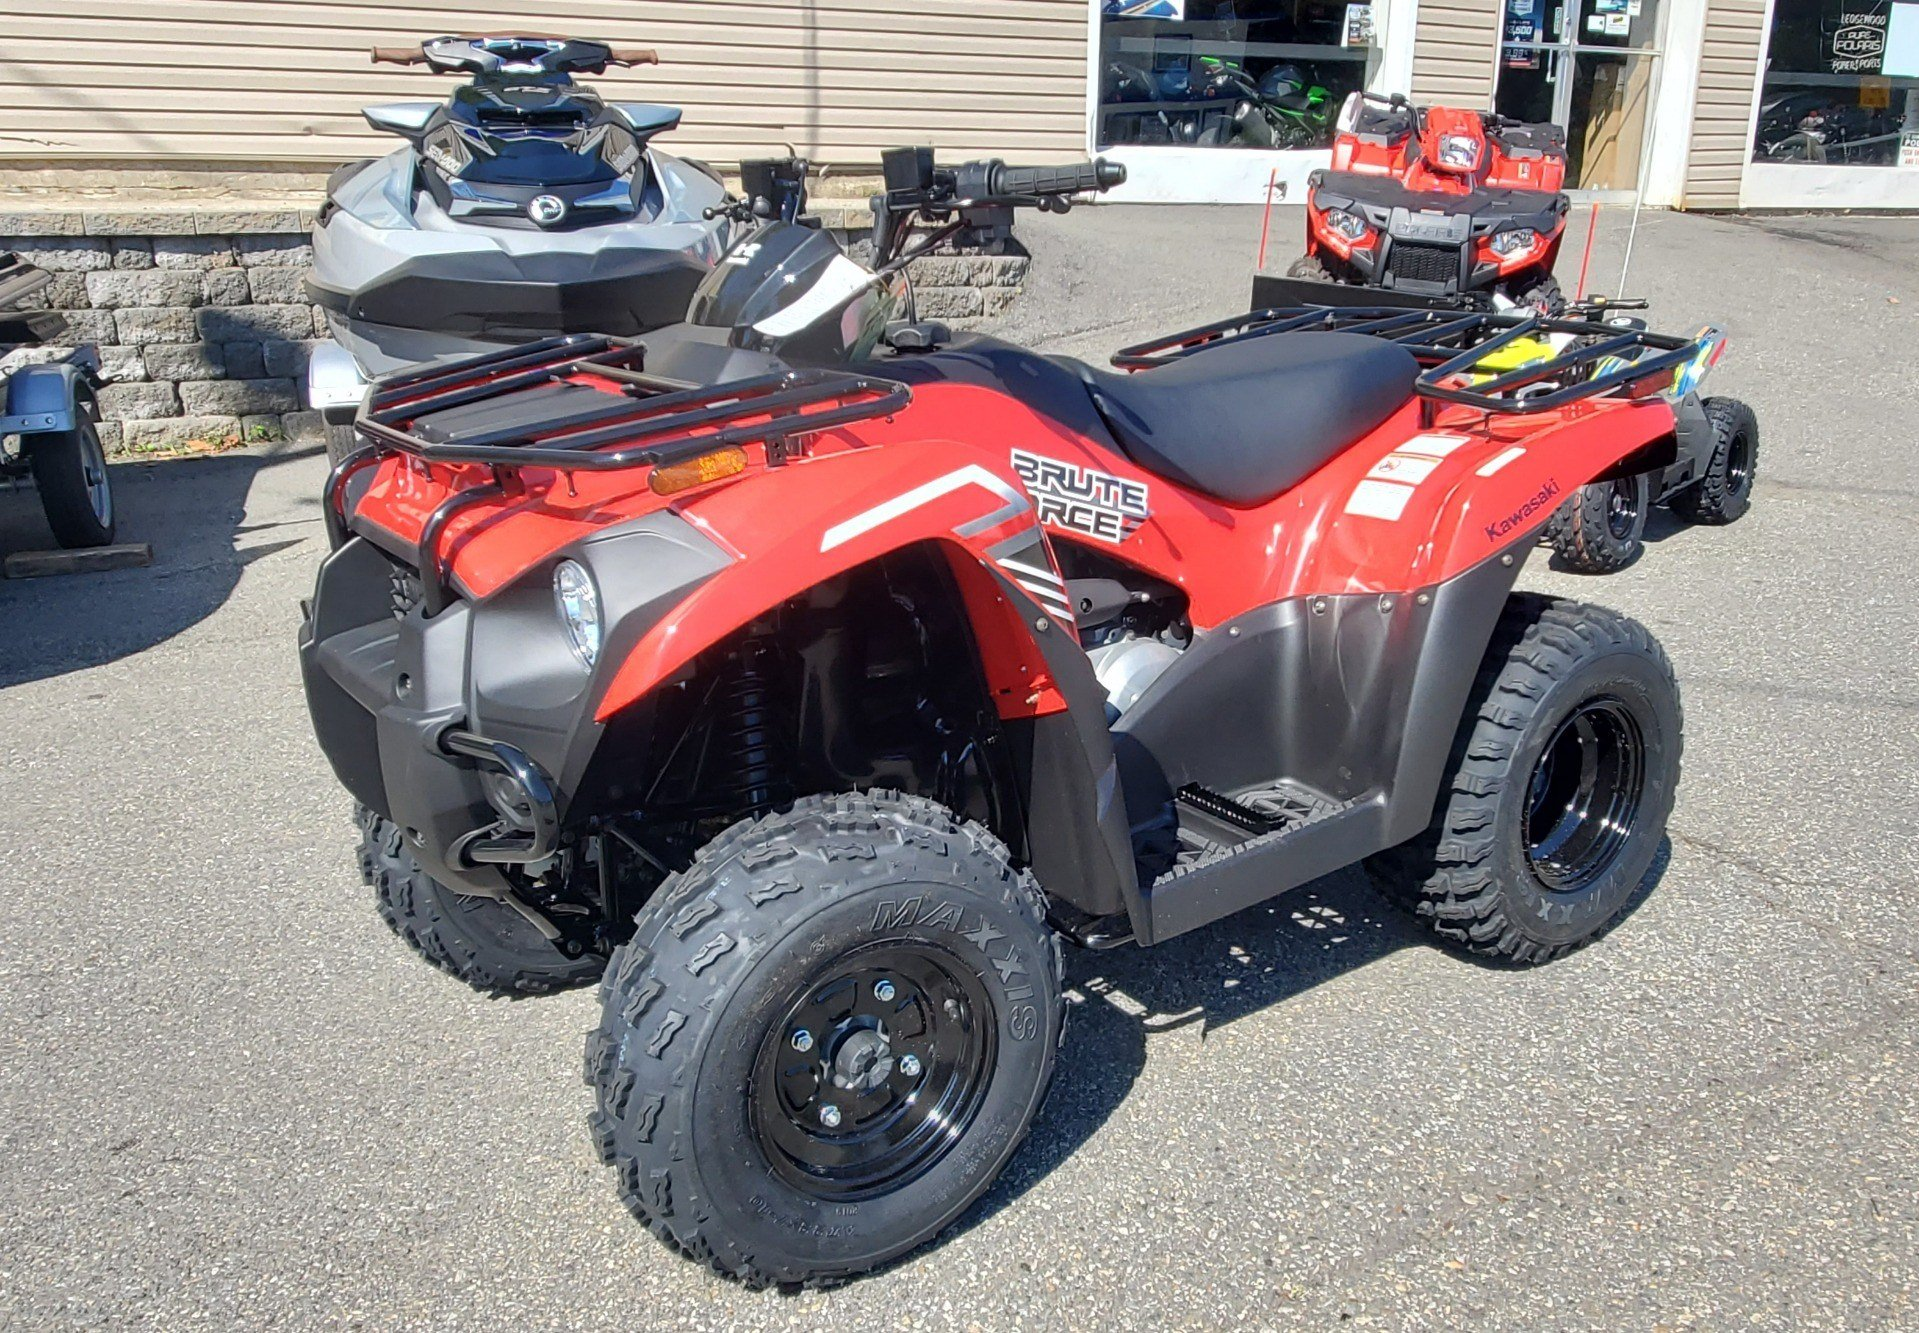 2020 Kawasaki Brute Force 300 in Ledgewood, New Jersey - Photo 1